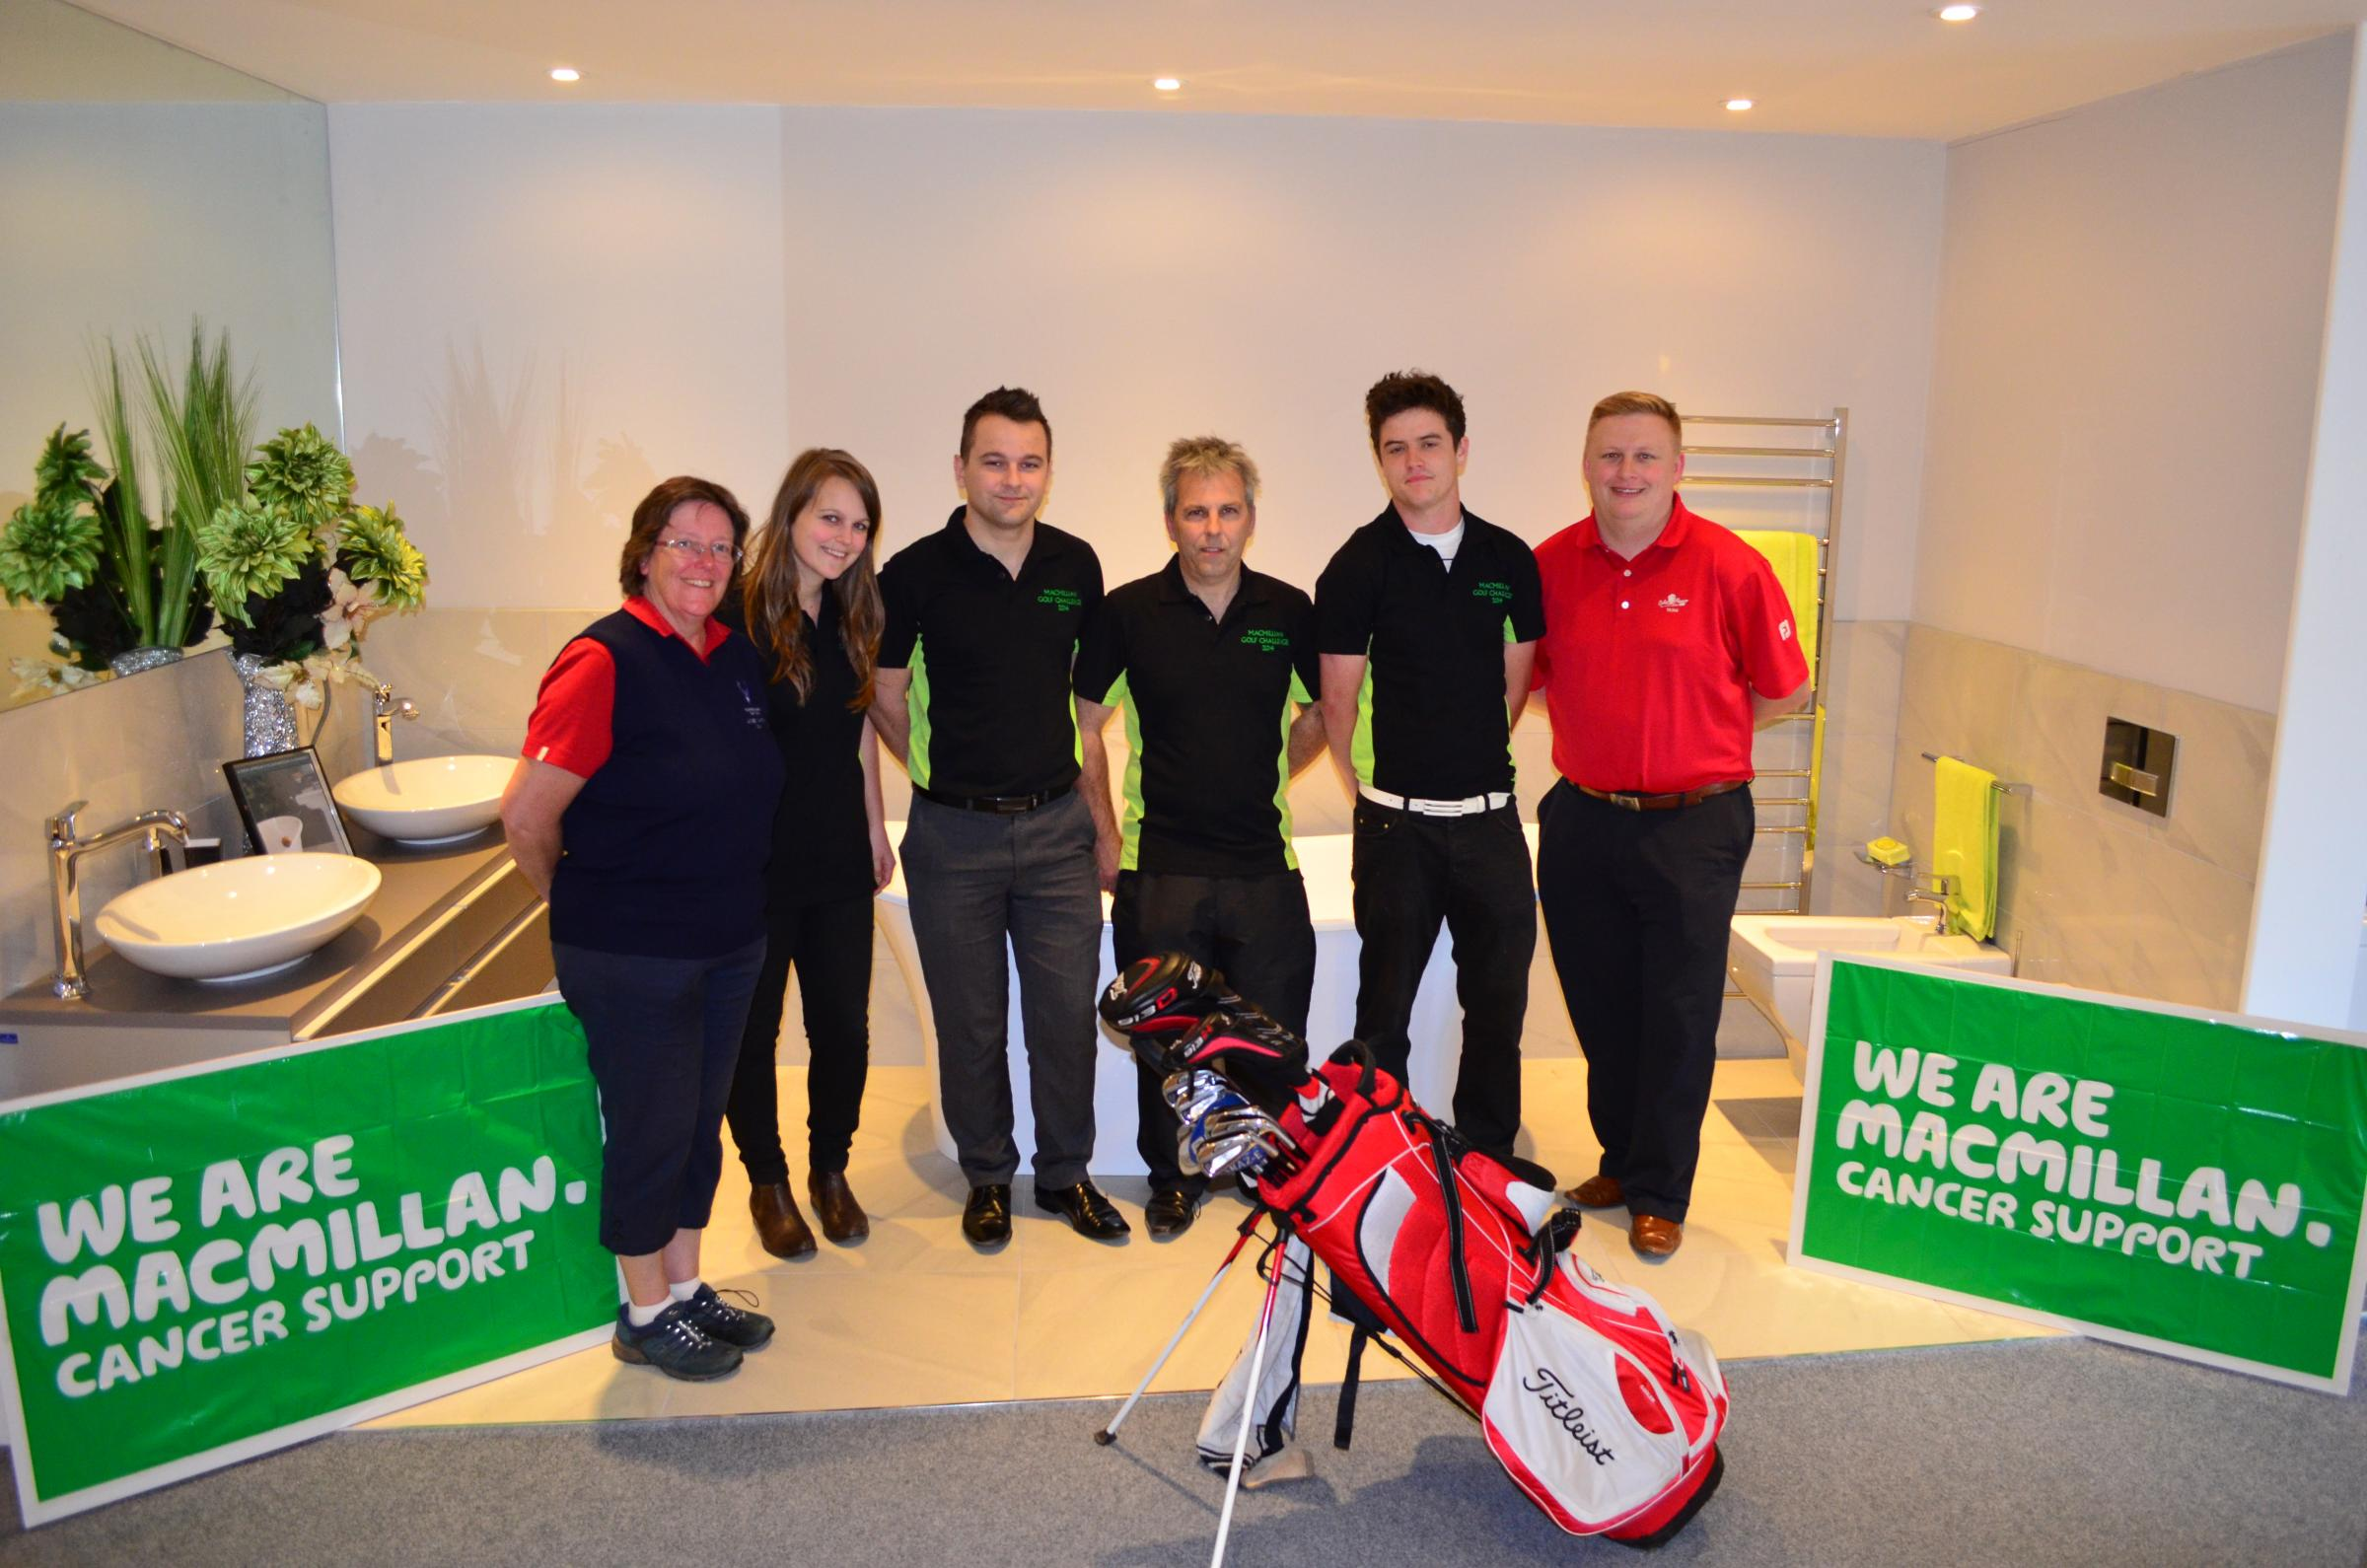 Judith Sperring, Enmore's Lady Captain, Shannon Neal, Daniel Neal, Paul Neal, Jacob Eyres and Oake Manor's Pro, Ja